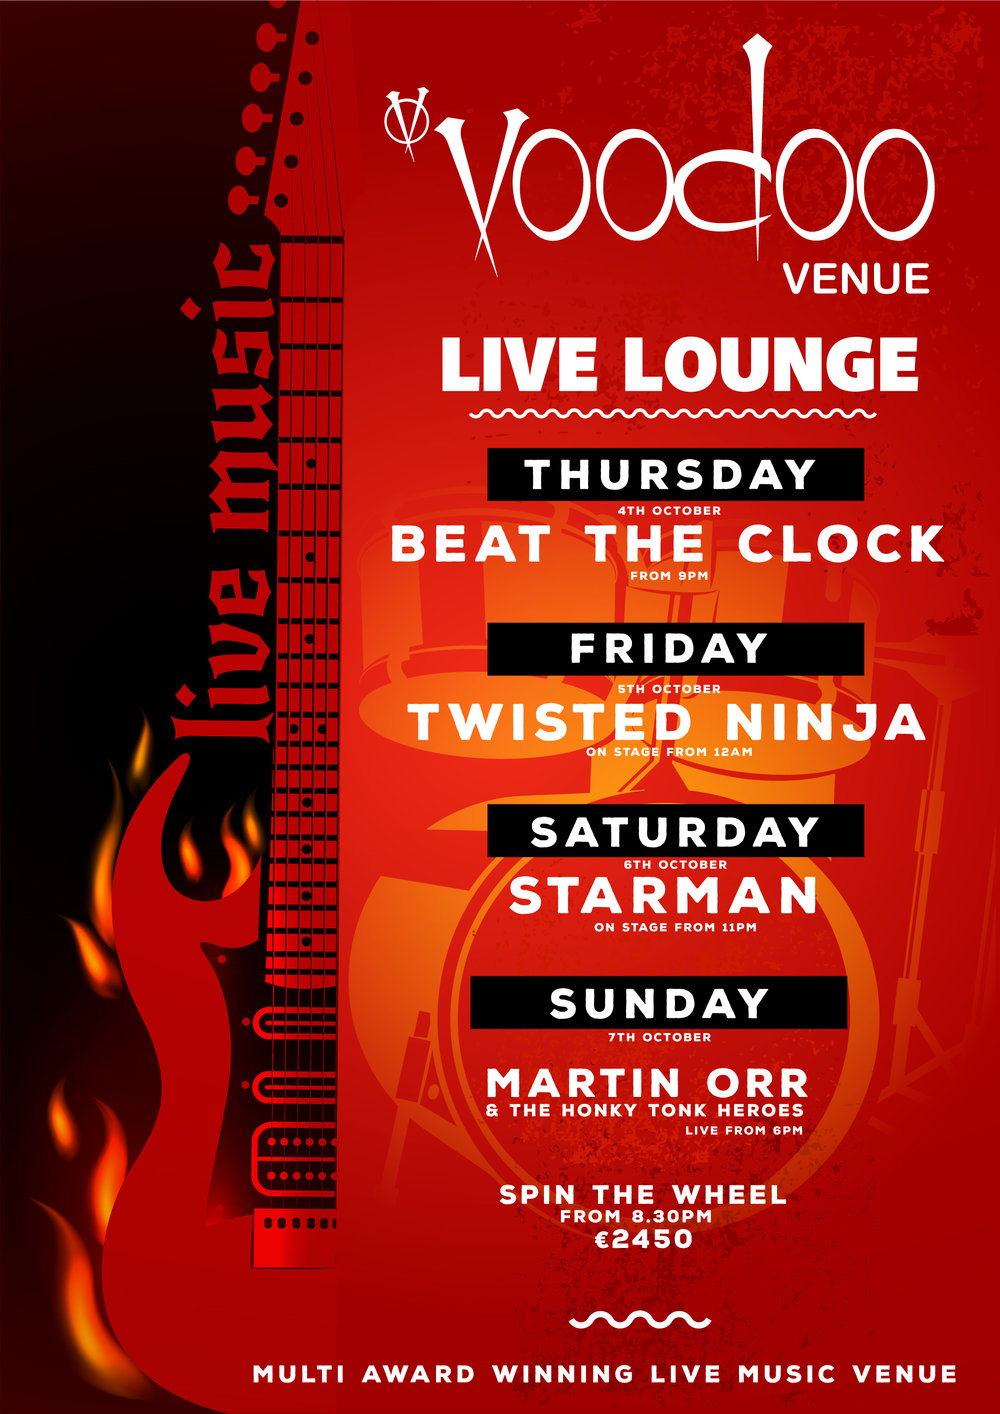 voodoo-venue---live-lounge---thurs-4-oct---7-2018-V2.jpg